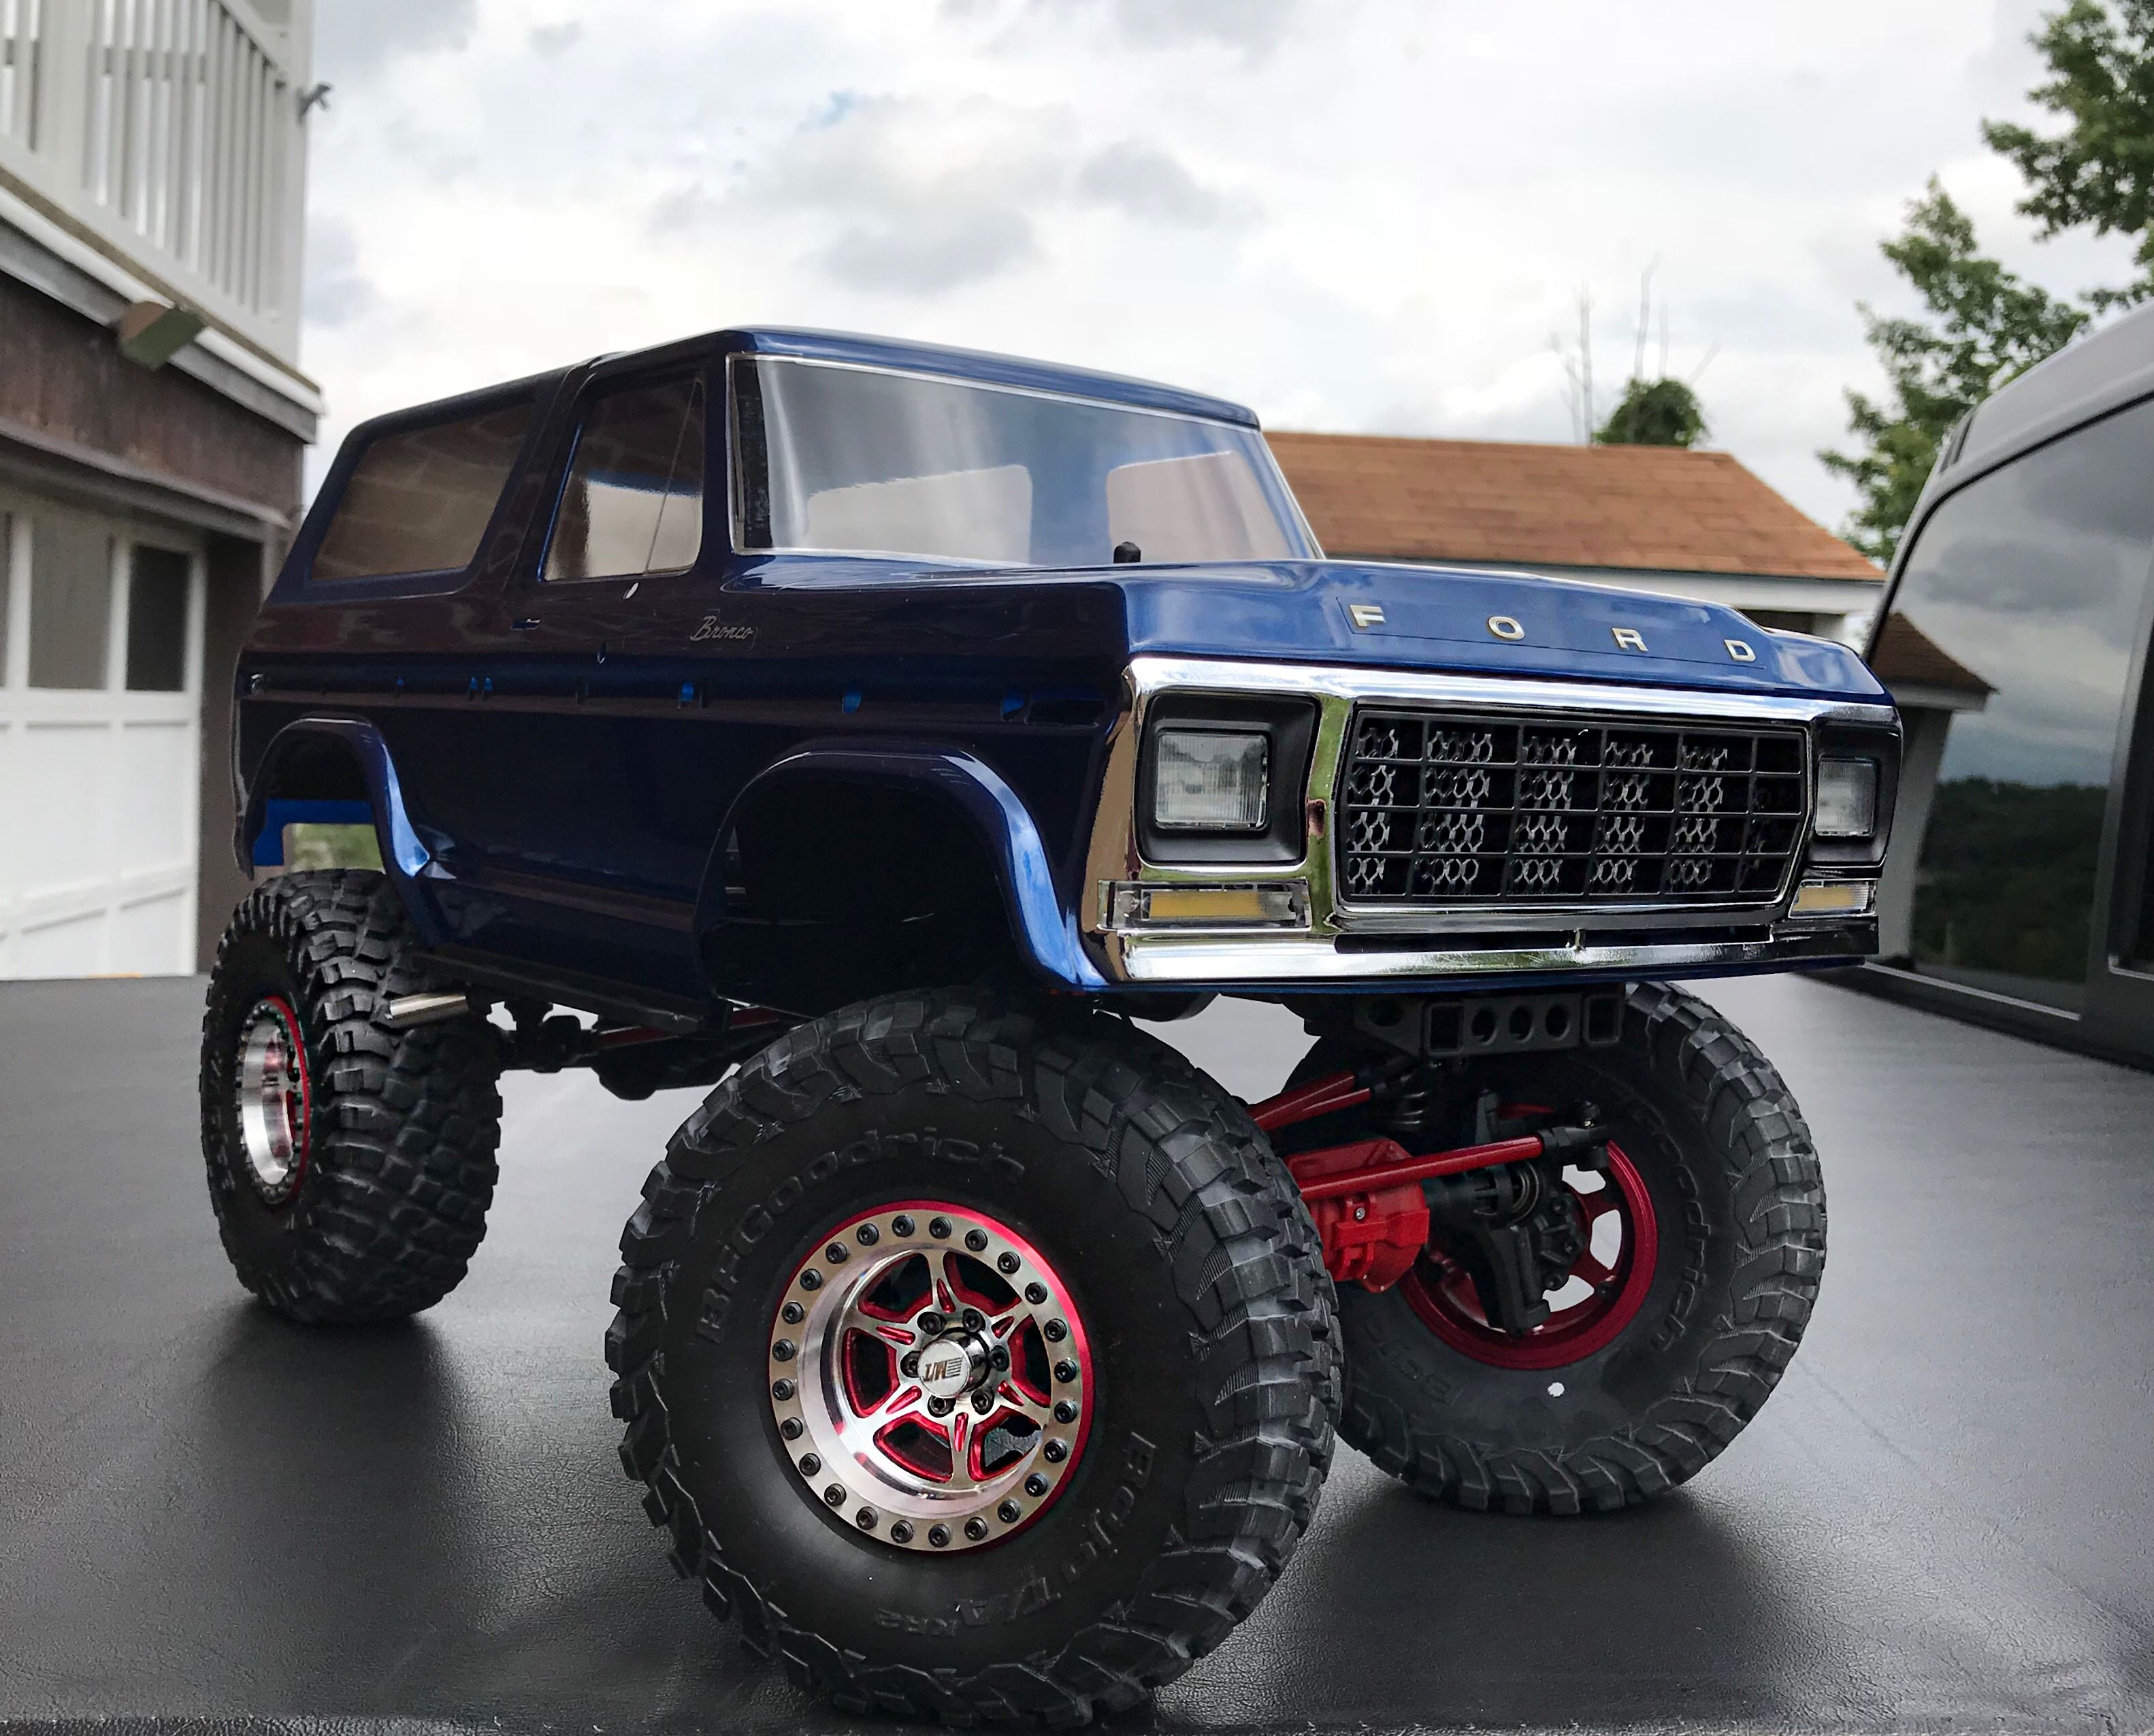 Traxxas TRX4 Bronco | RC'S | Boat radio, Rc trucks, Radio